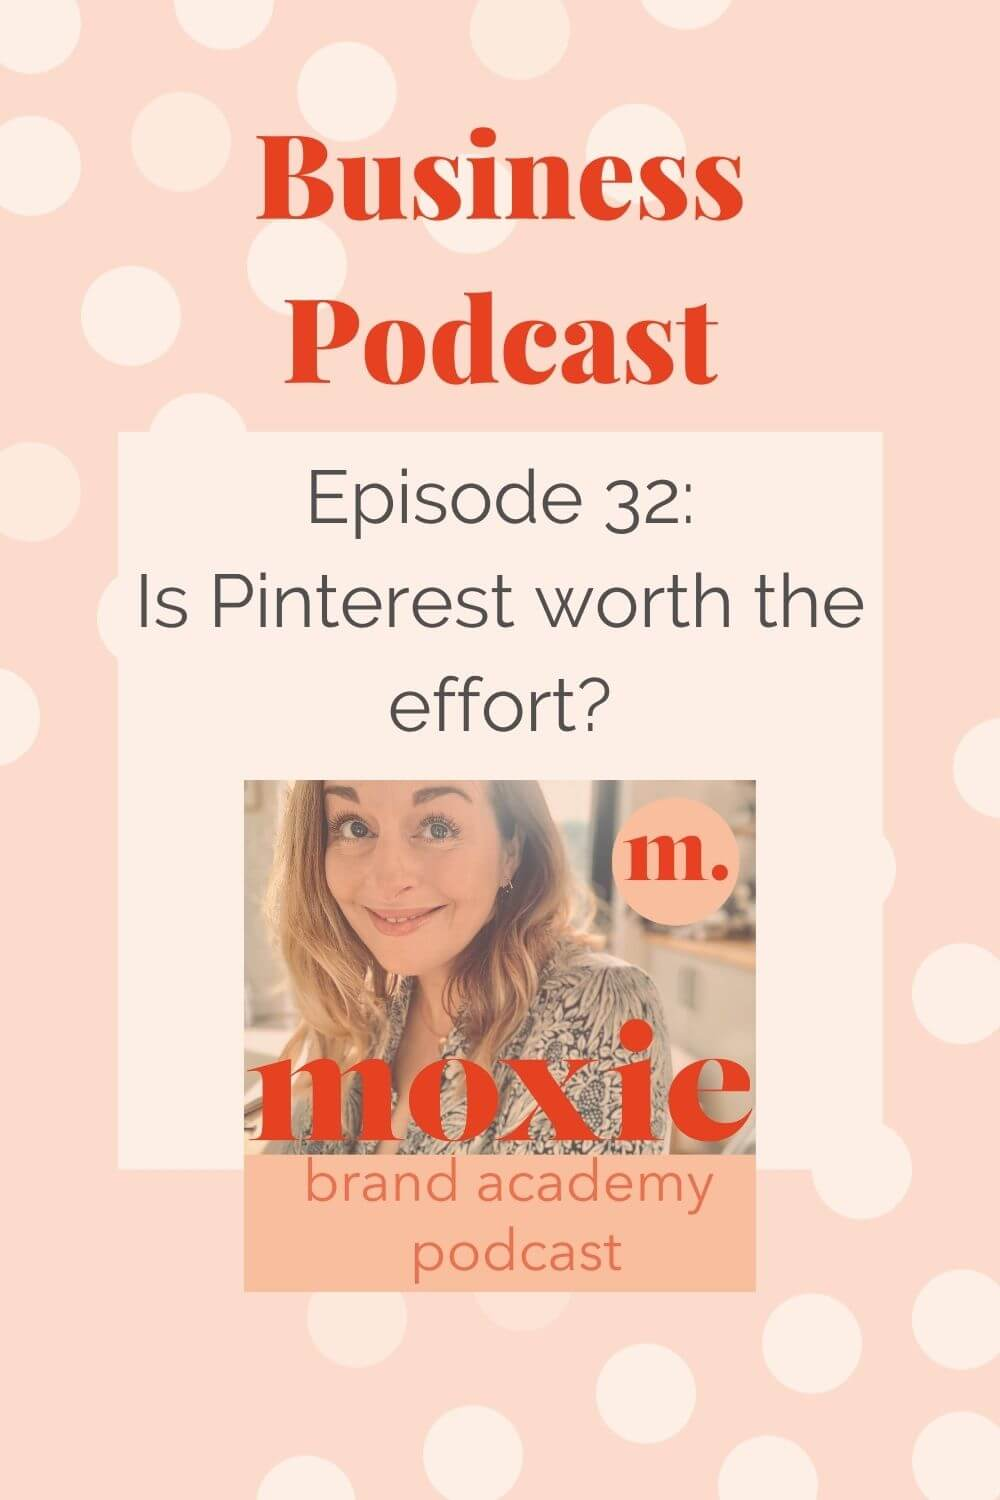 Is Pinterest worth the effort?